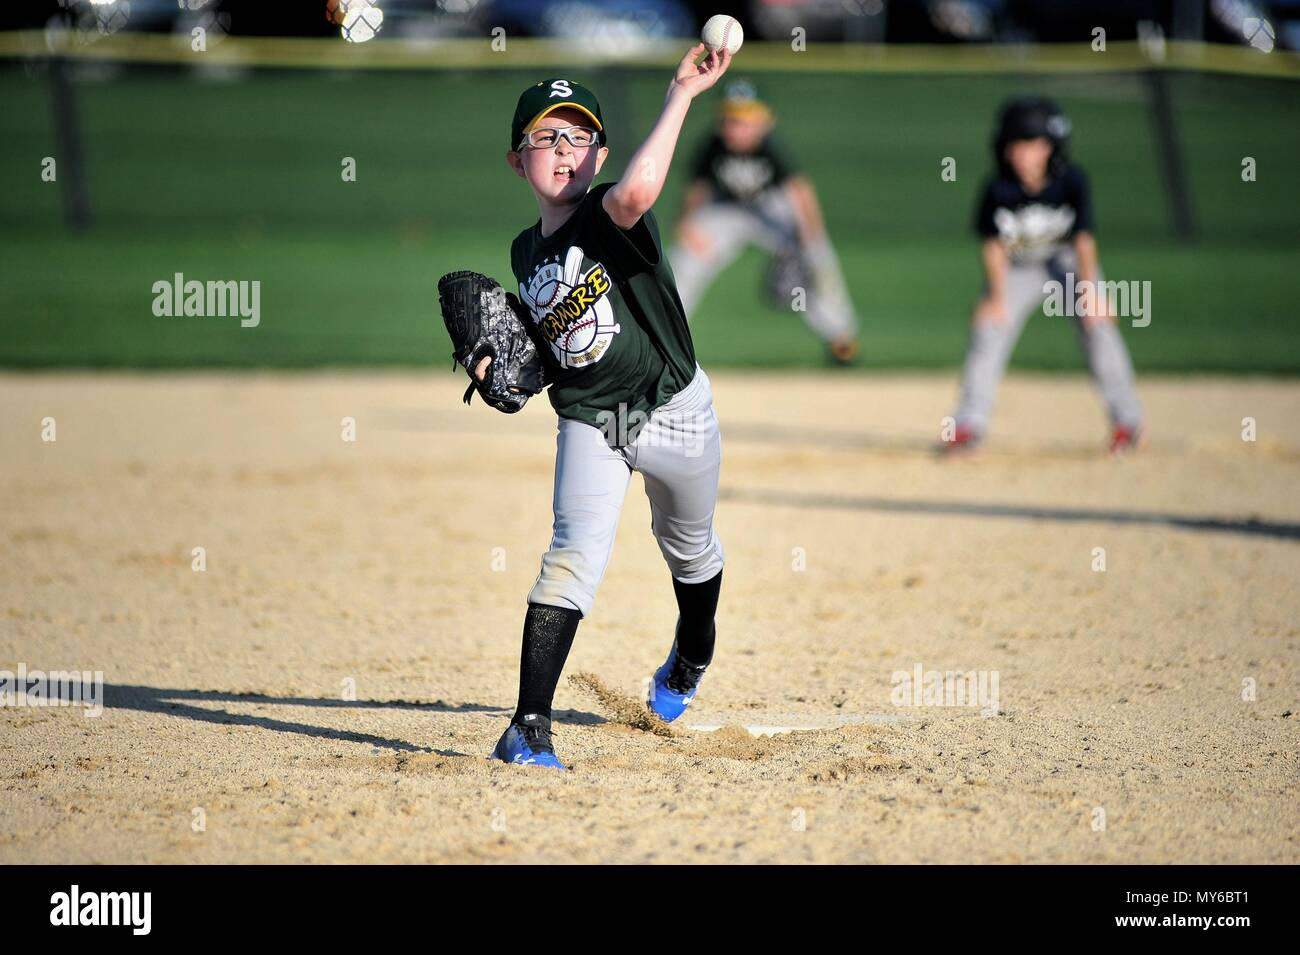 Sycamore, Illinois, USA. A young left-handed pitcher releasing a pitch during an organized community youth baseball game. - Stock Image